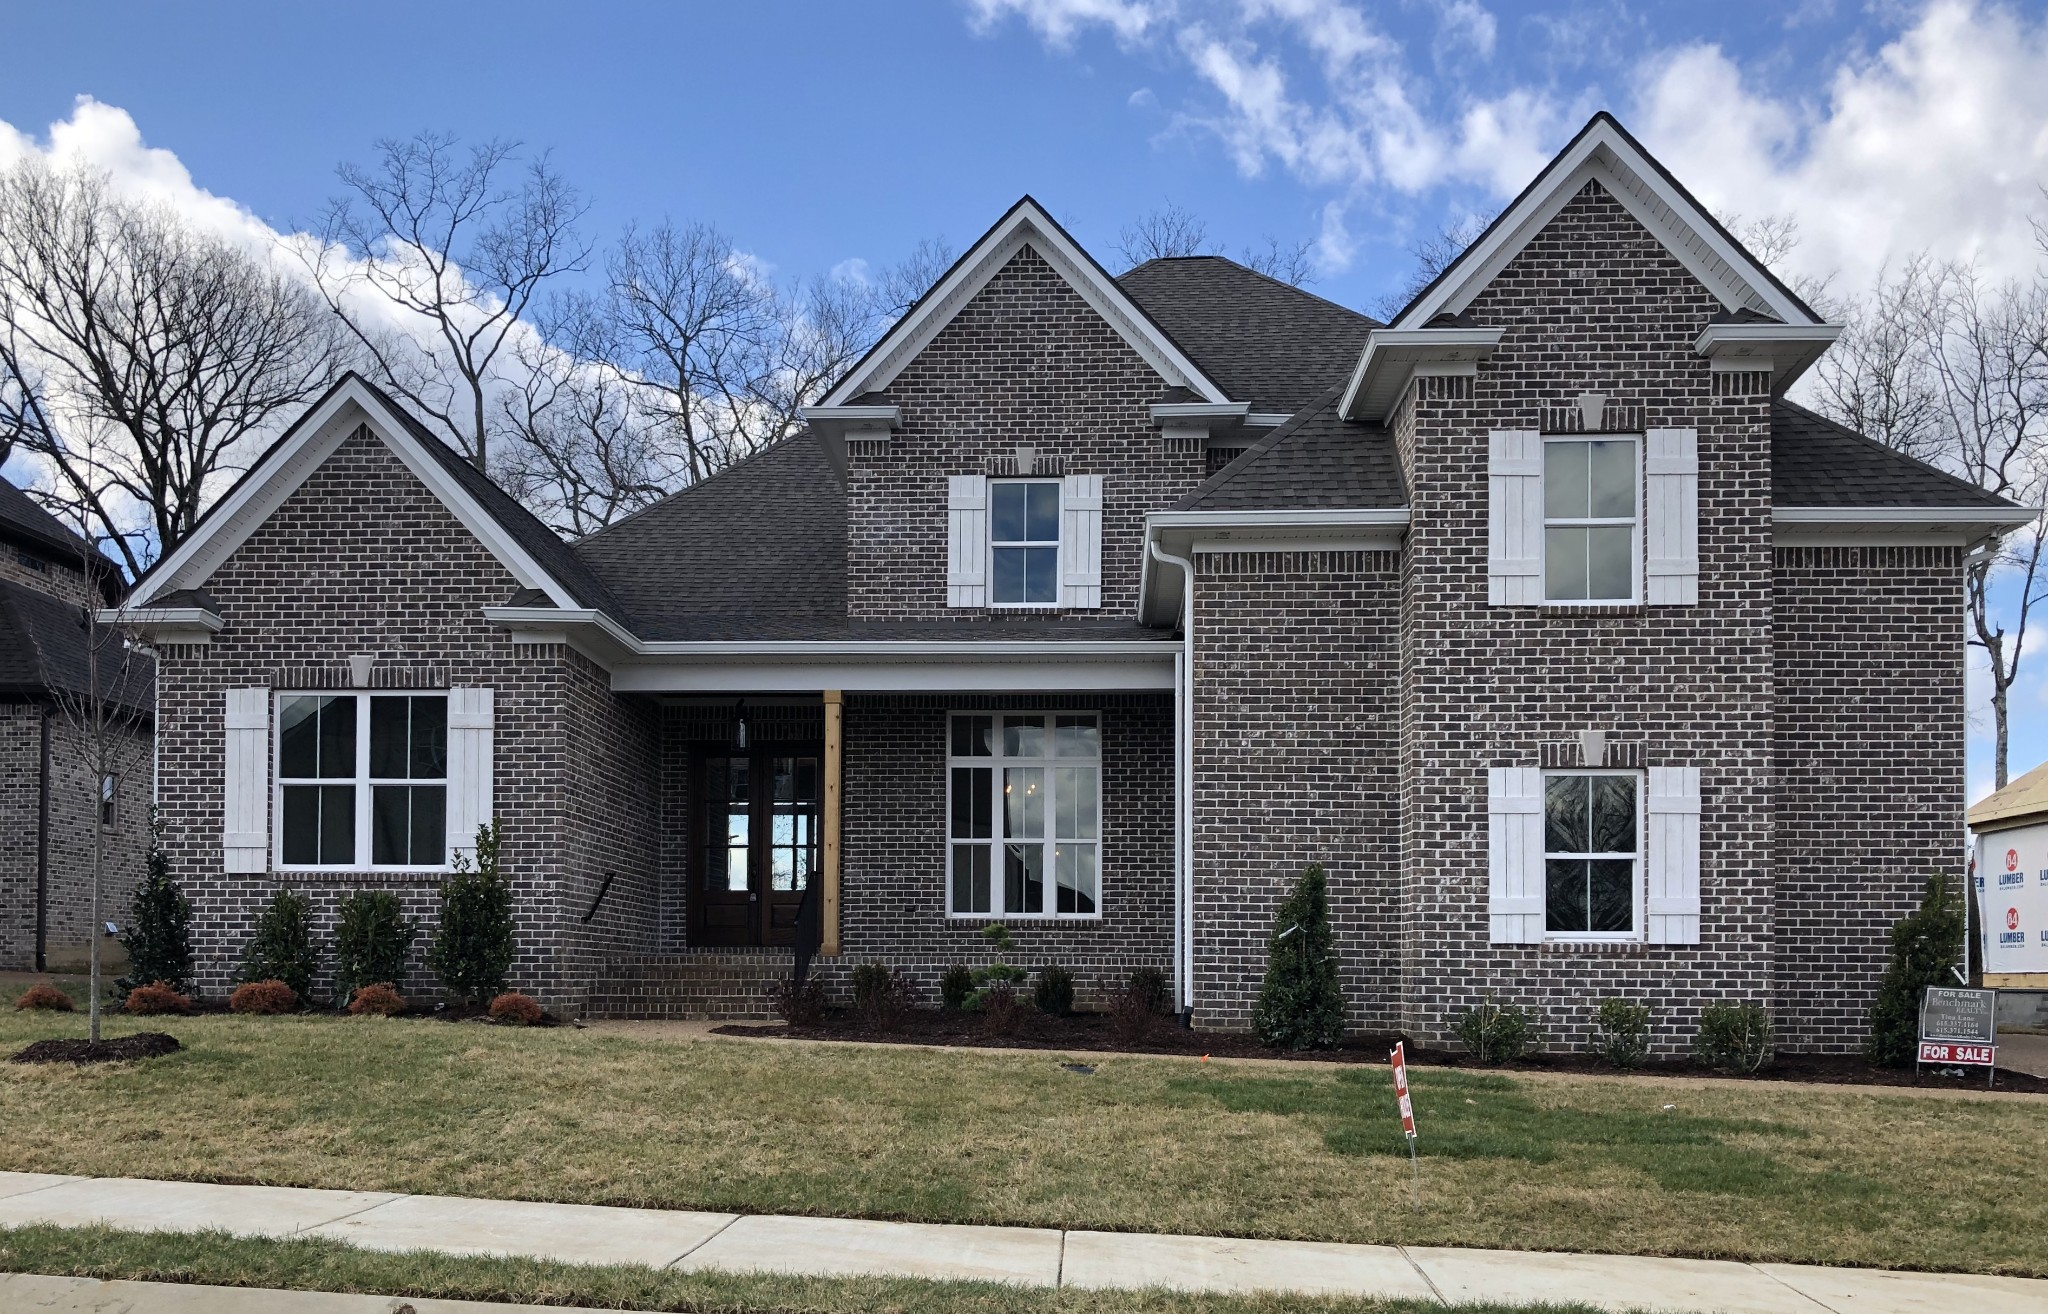 1567 Bunbury Dr (258), Thompsons Station, TN 37179 - Thompsons Station, TN real estate listing